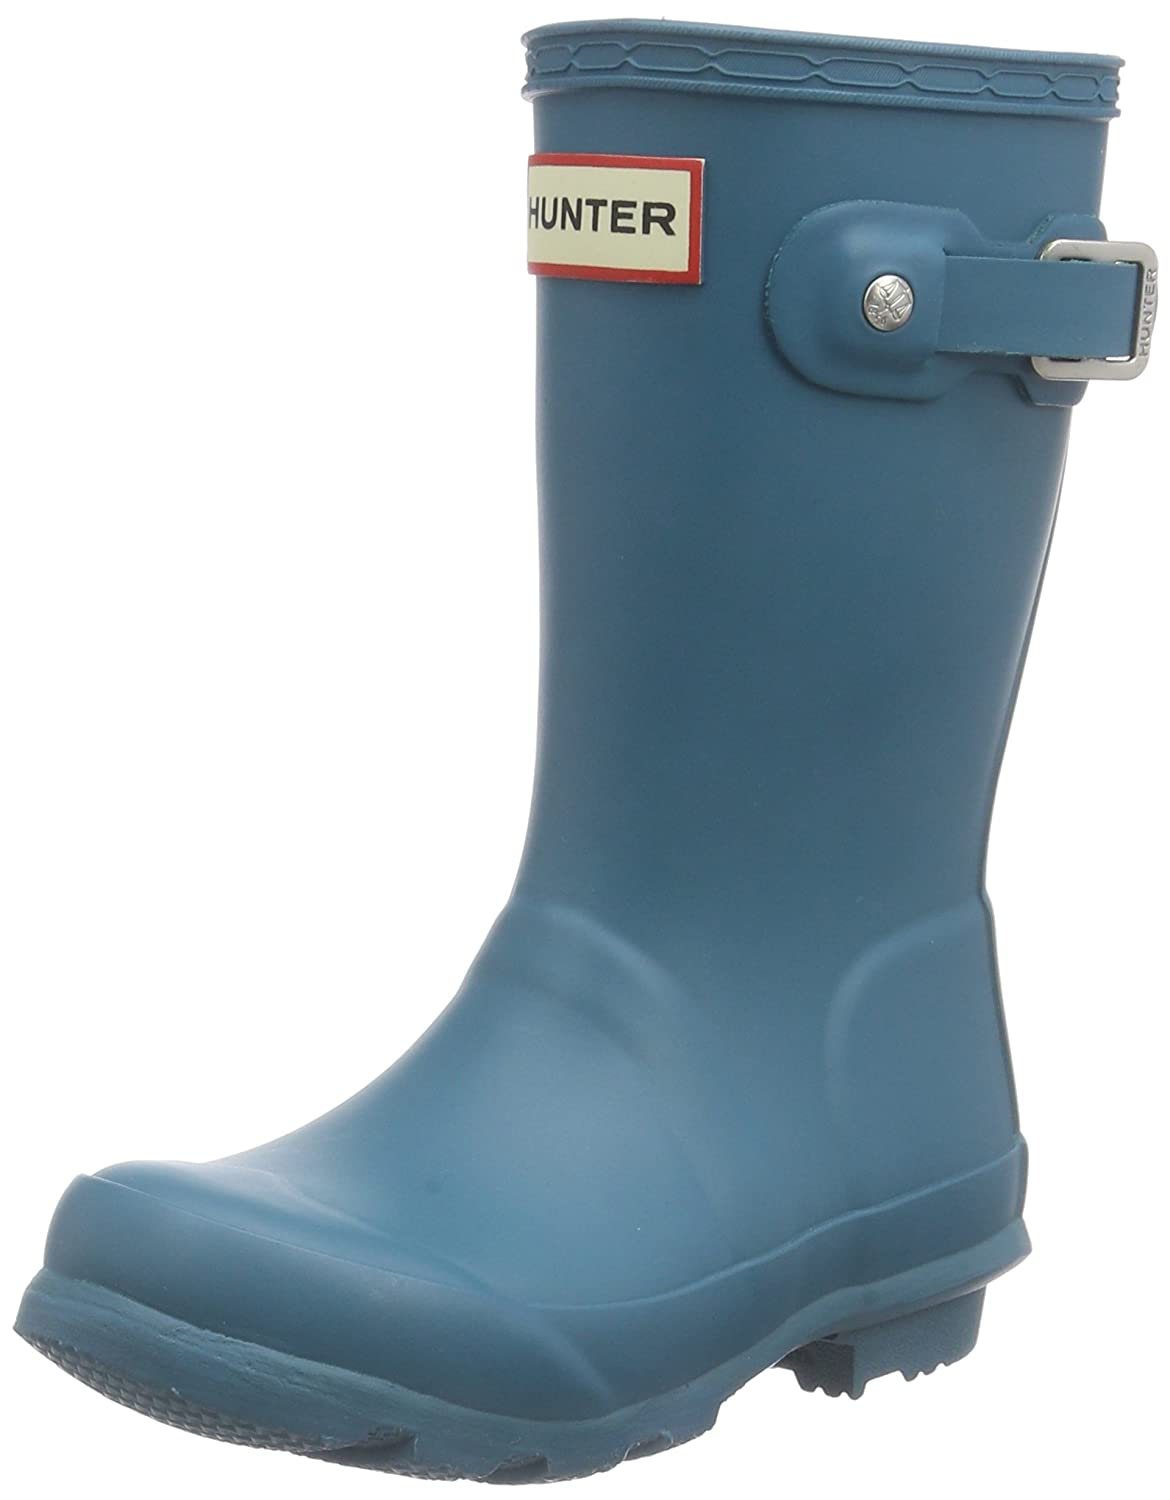 Hunter HUNTER ORIGINAL KIDS Unisex-Kinder Kurzschaft Gummistiefel